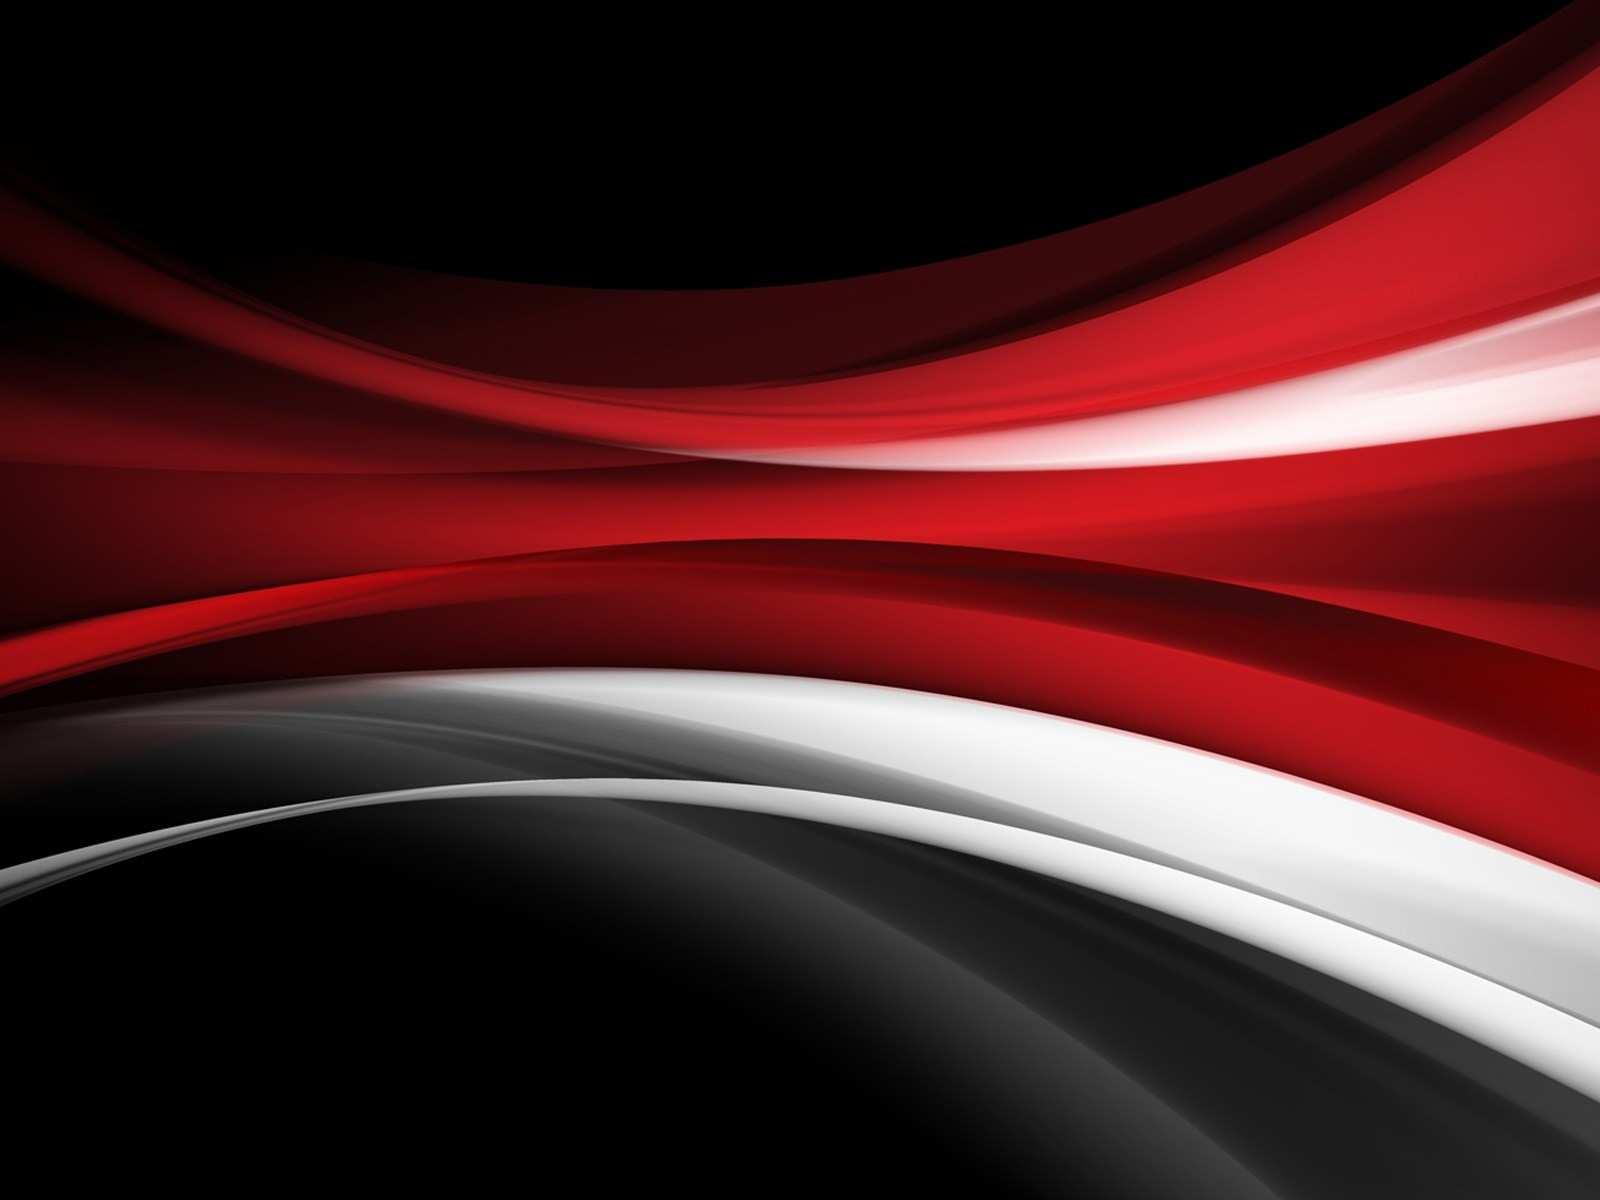 gambar wallpaper bendera merah putih sobgrafiti background hitam merah putih 743052 hd wallpaper backgrounds download gambar wallpaper bendera merah putih